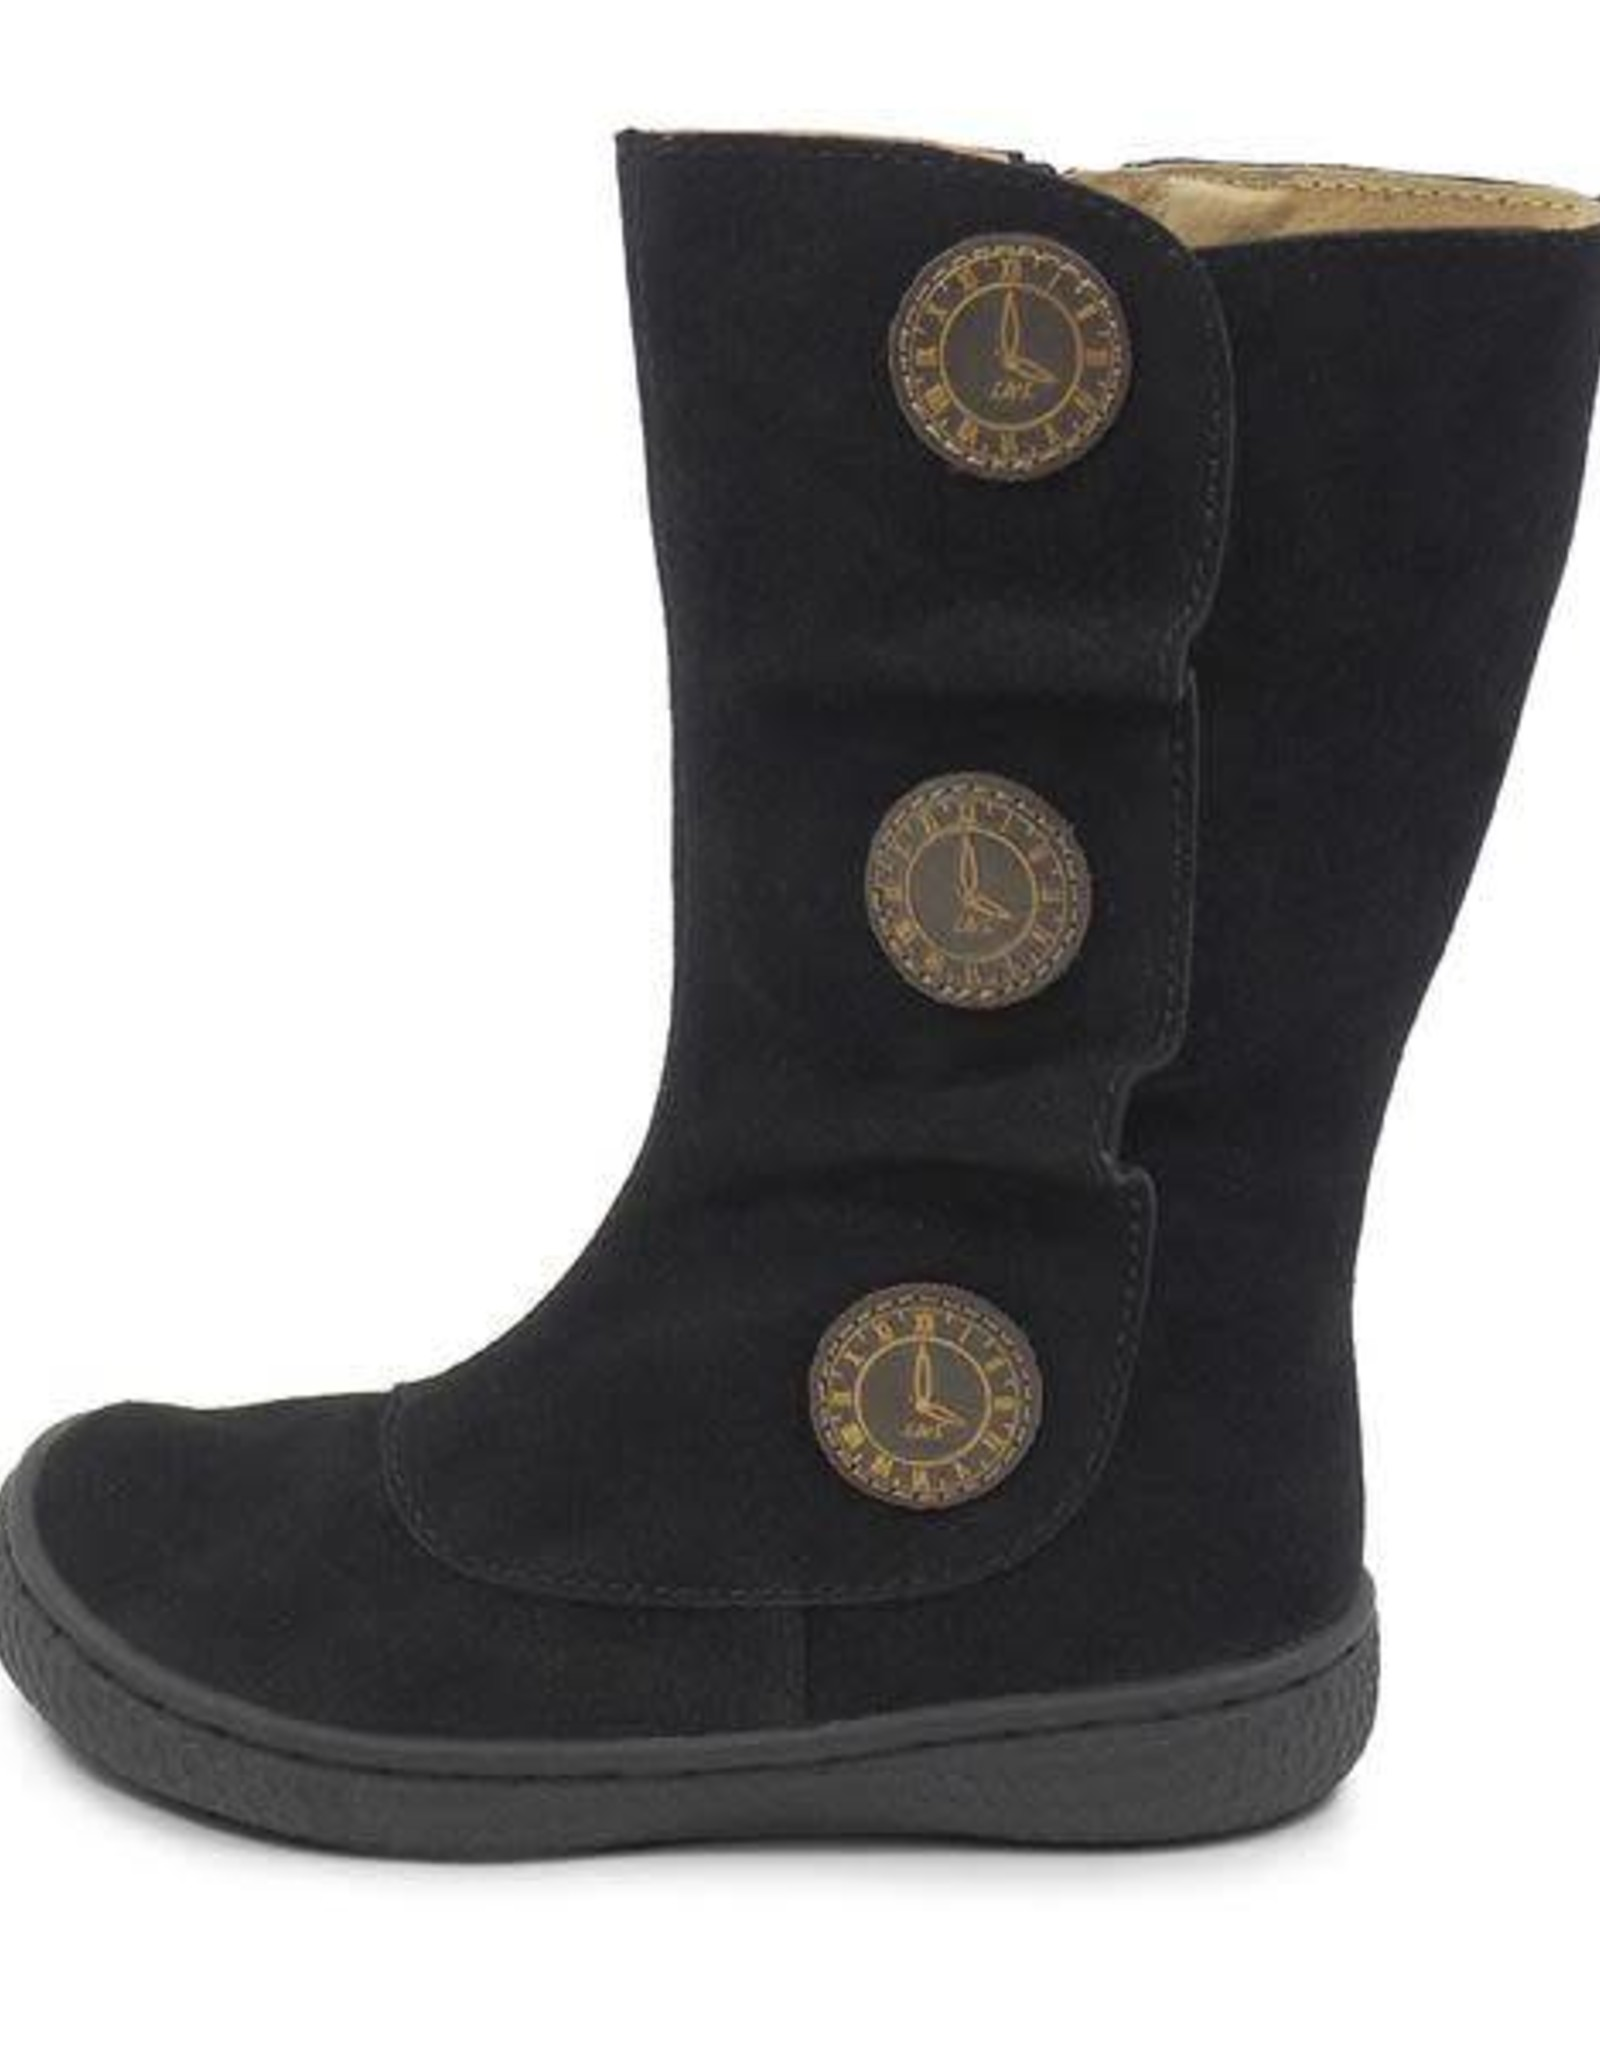 Livie and Luca Tiempo Boots in Black Suede